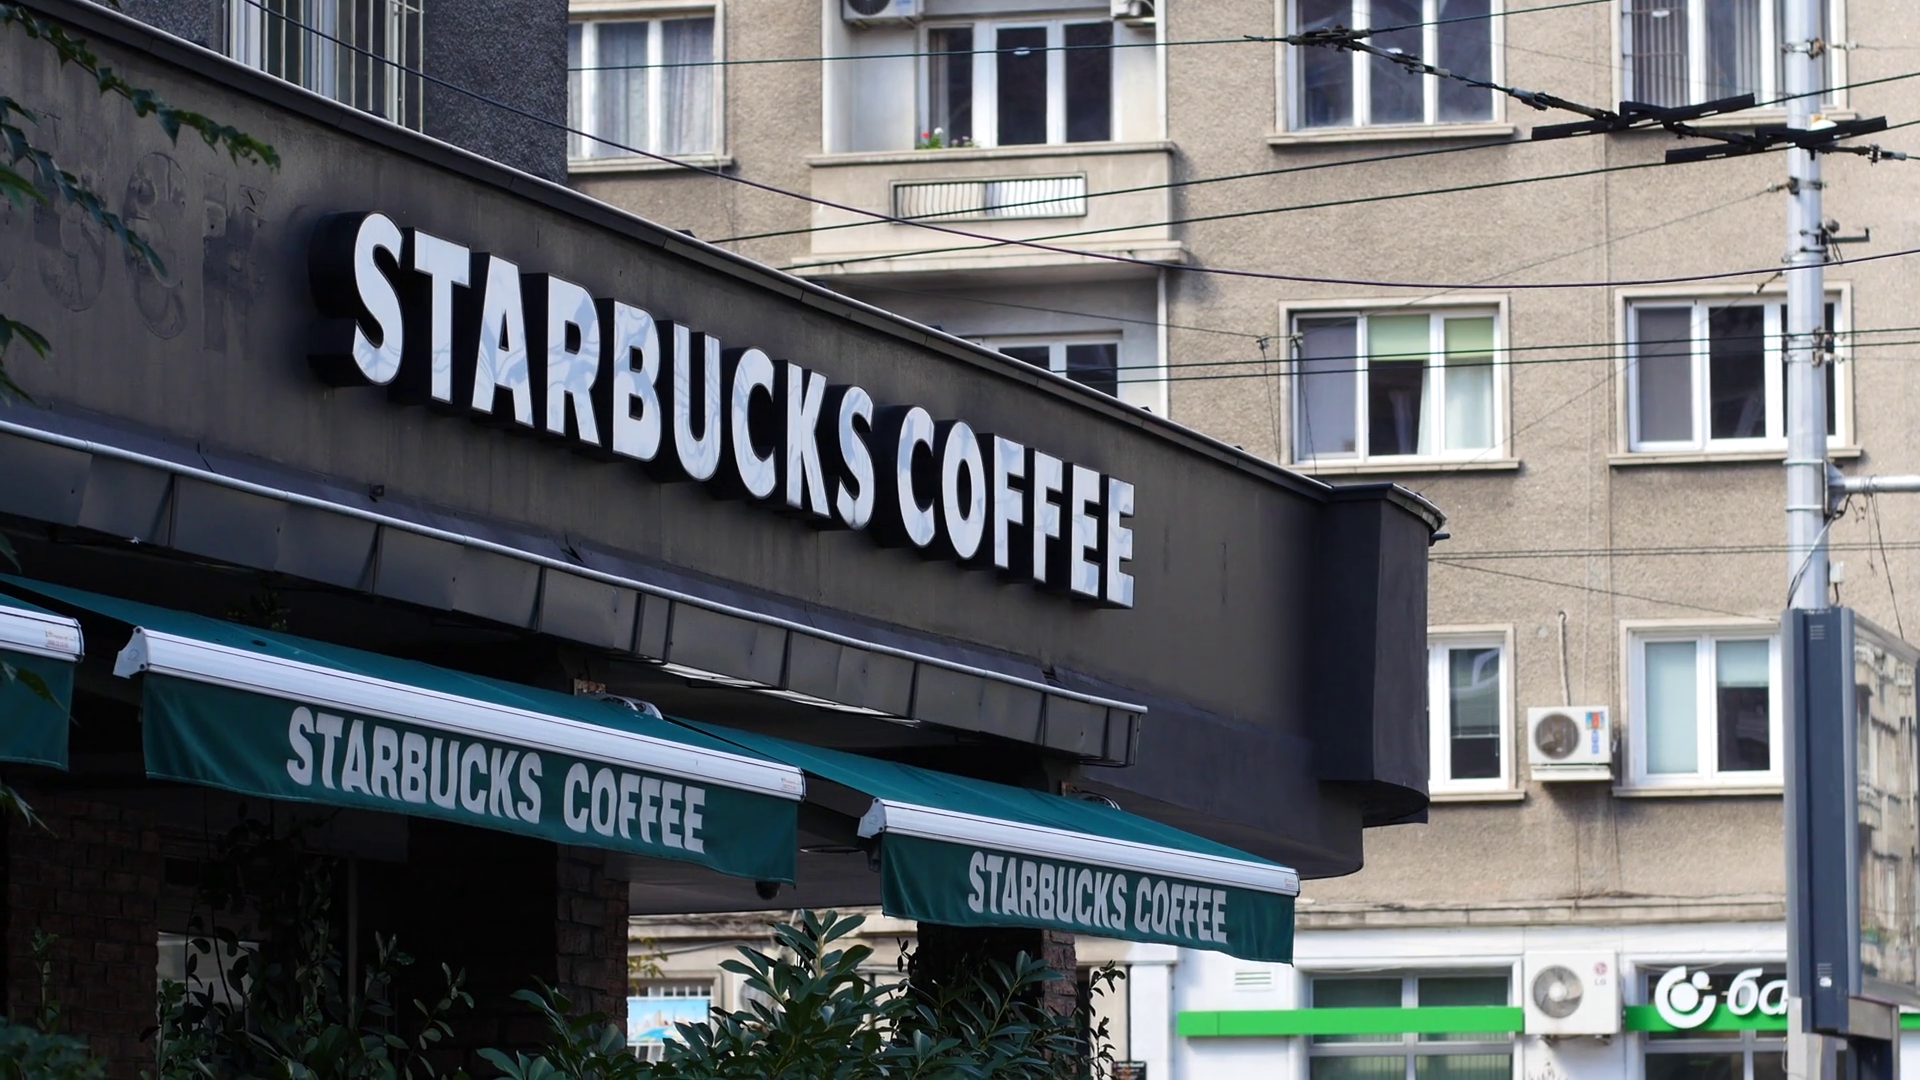 Sofia, Bulgaria - Starbucks coffee signboard above storefront cafe ...